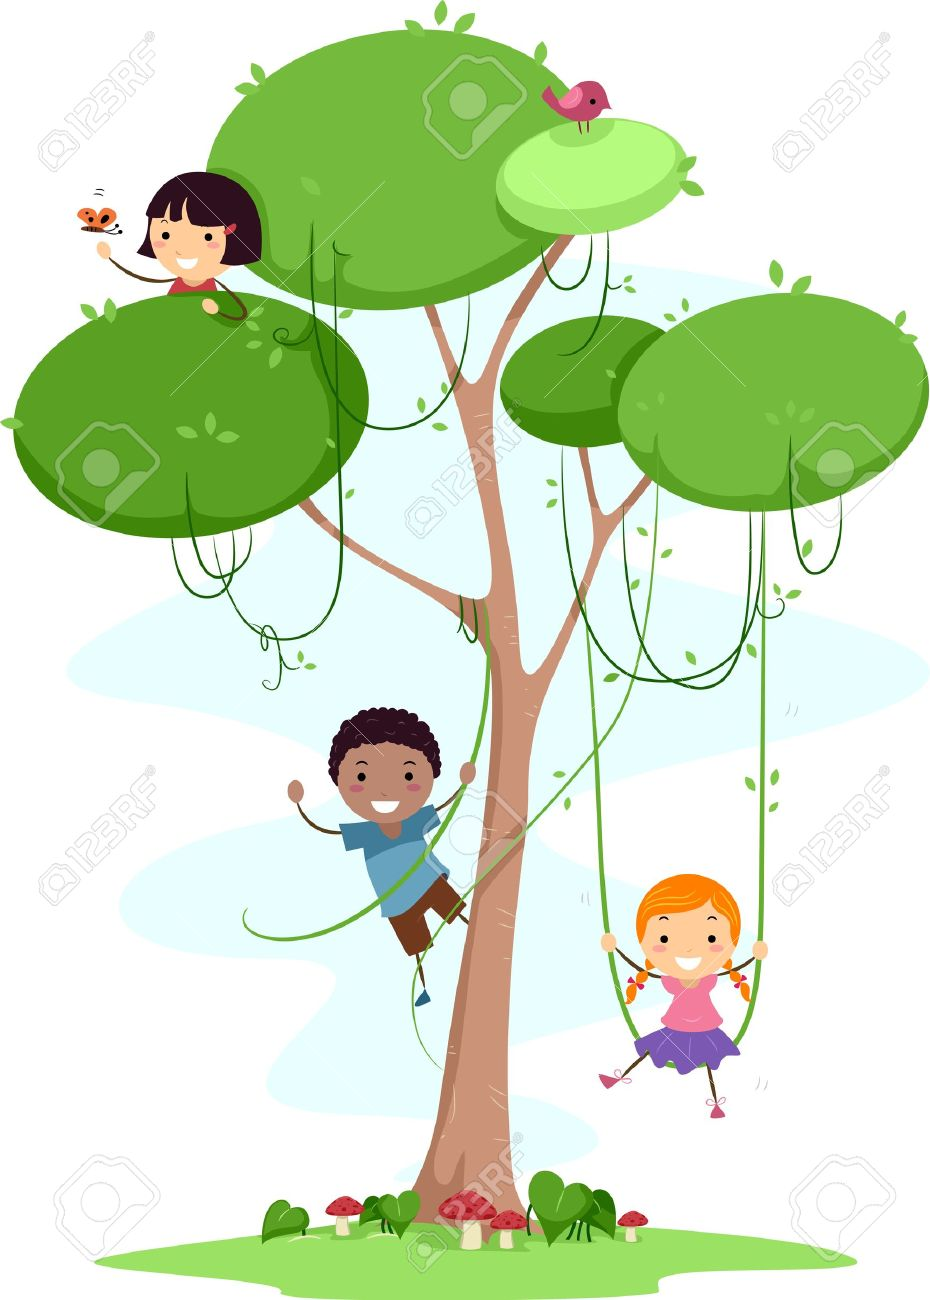 Illustration Of Kids Playing With Vines Stock Photo, Picture And.